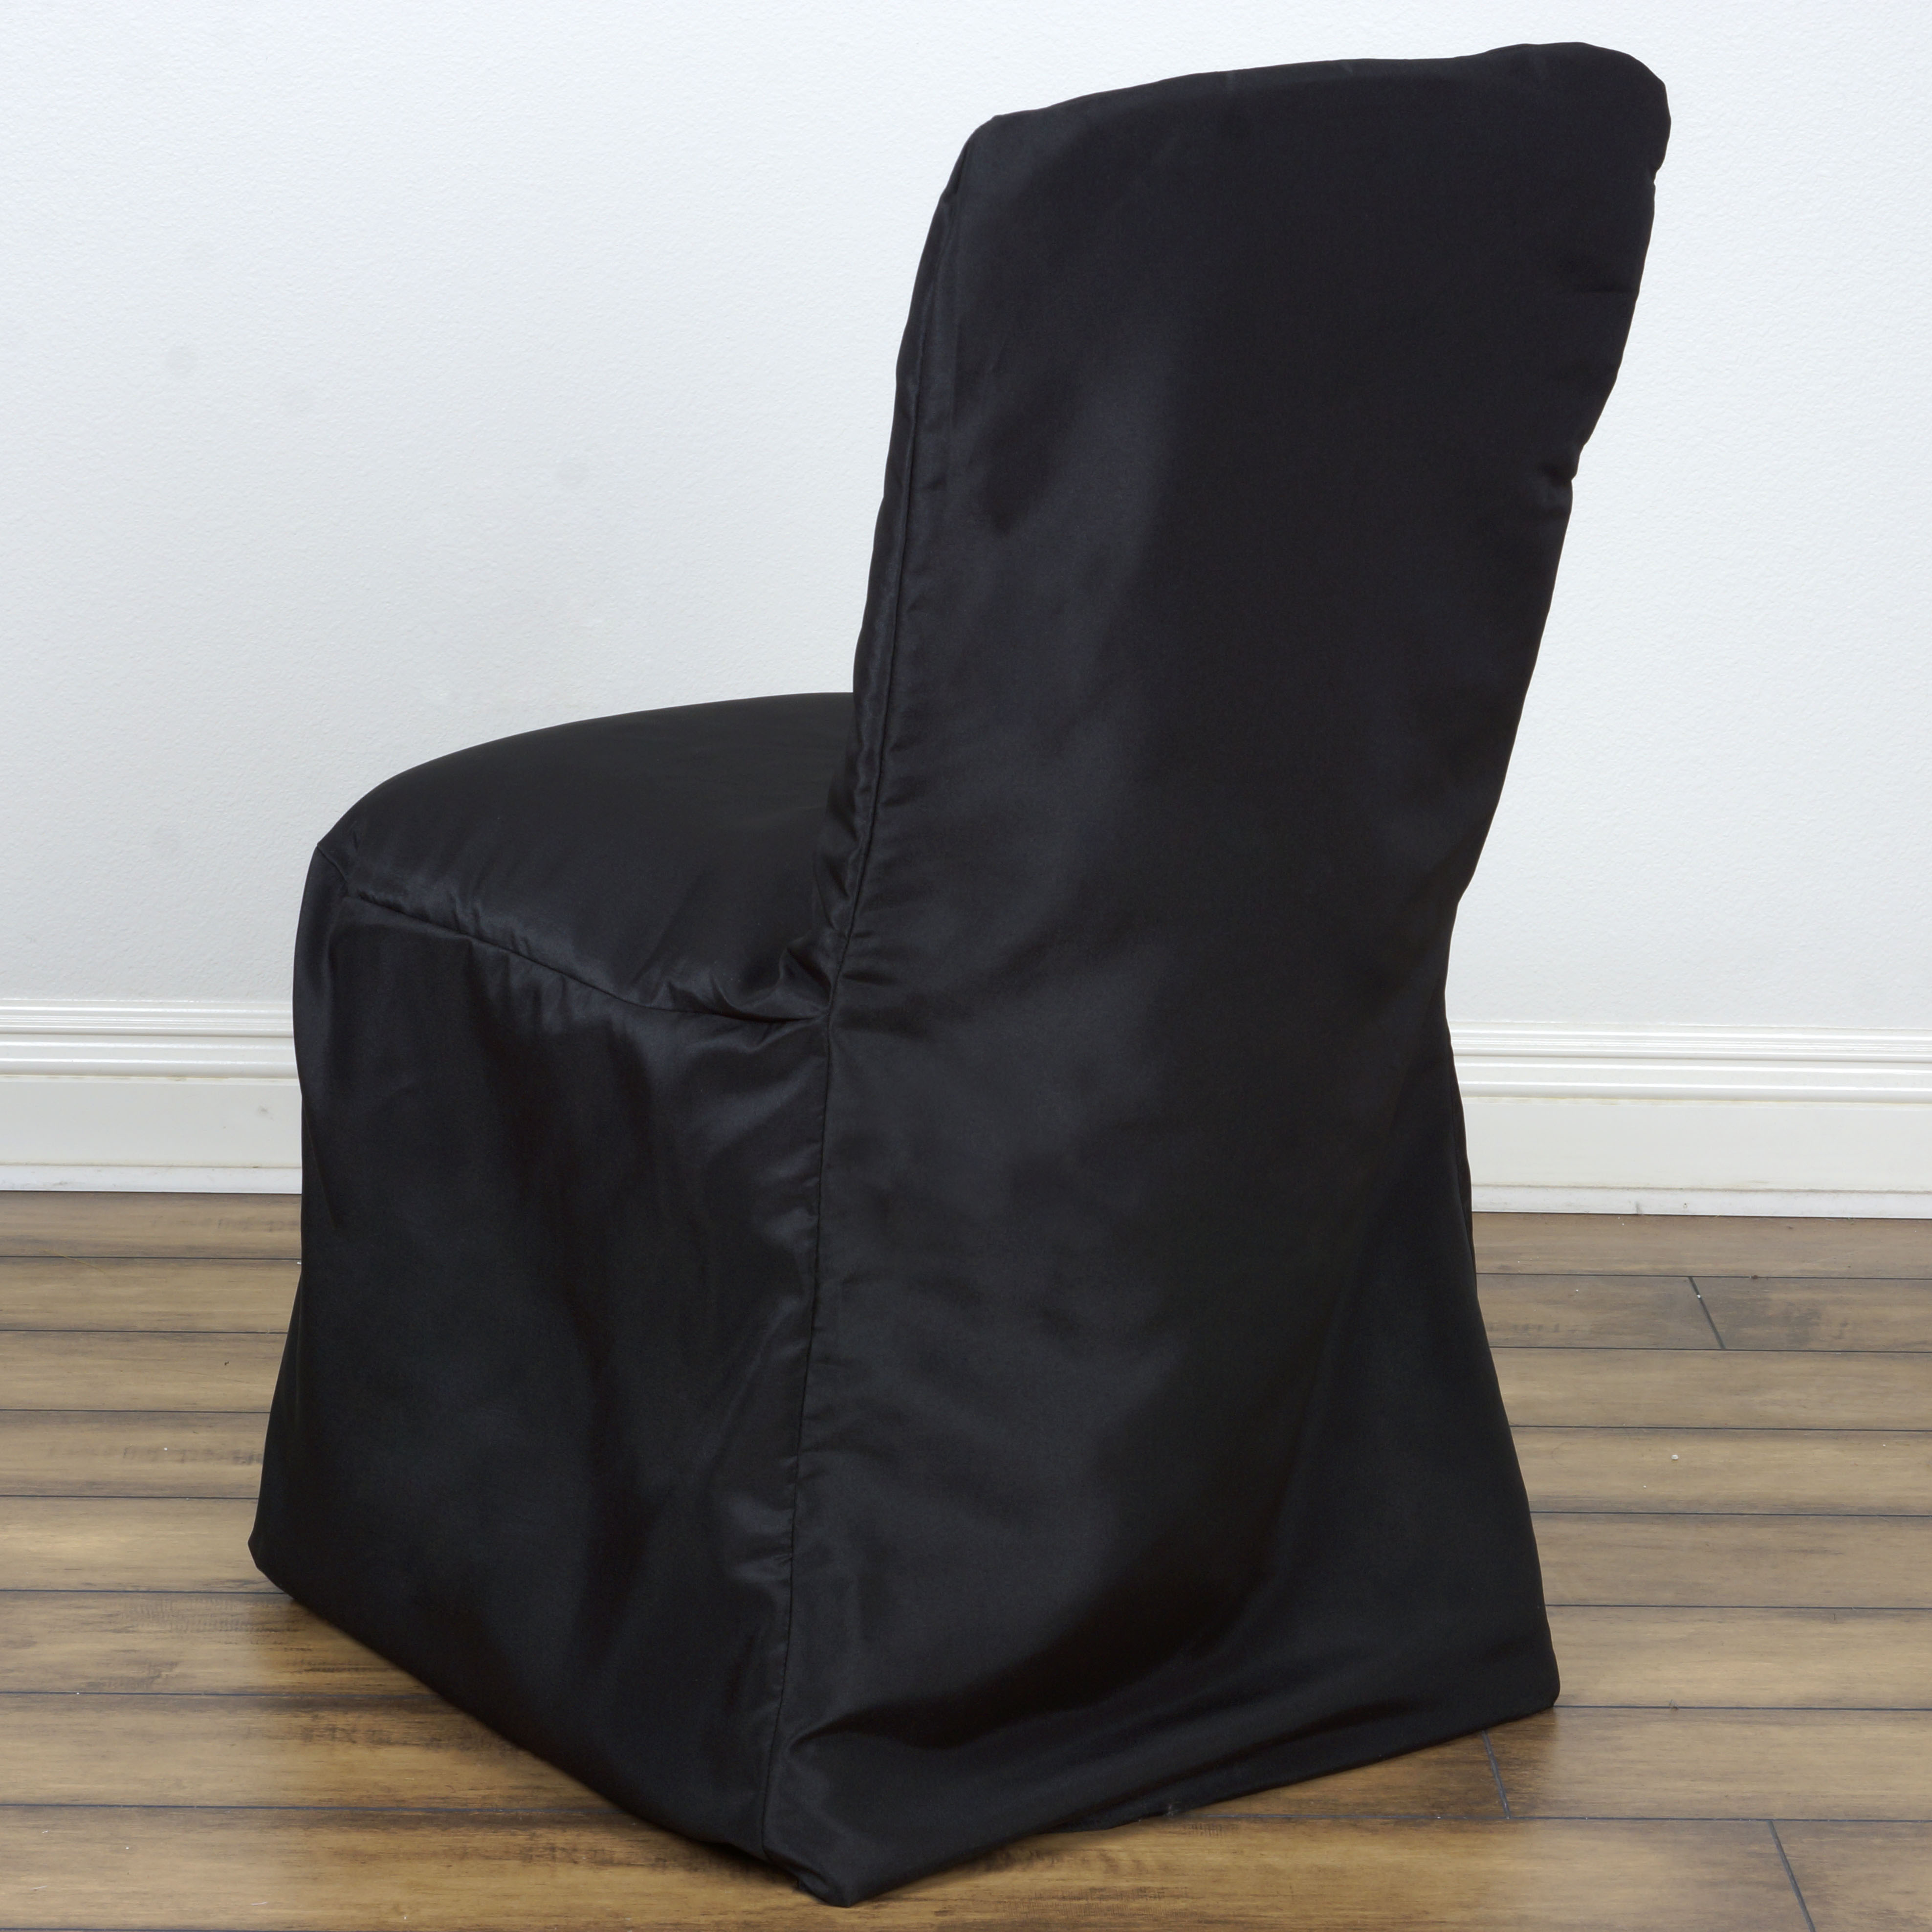 100 pcs SQUARE TOP POLYESTER BANQUET CHAIR COVERS Wholesale Wedding Decoratio